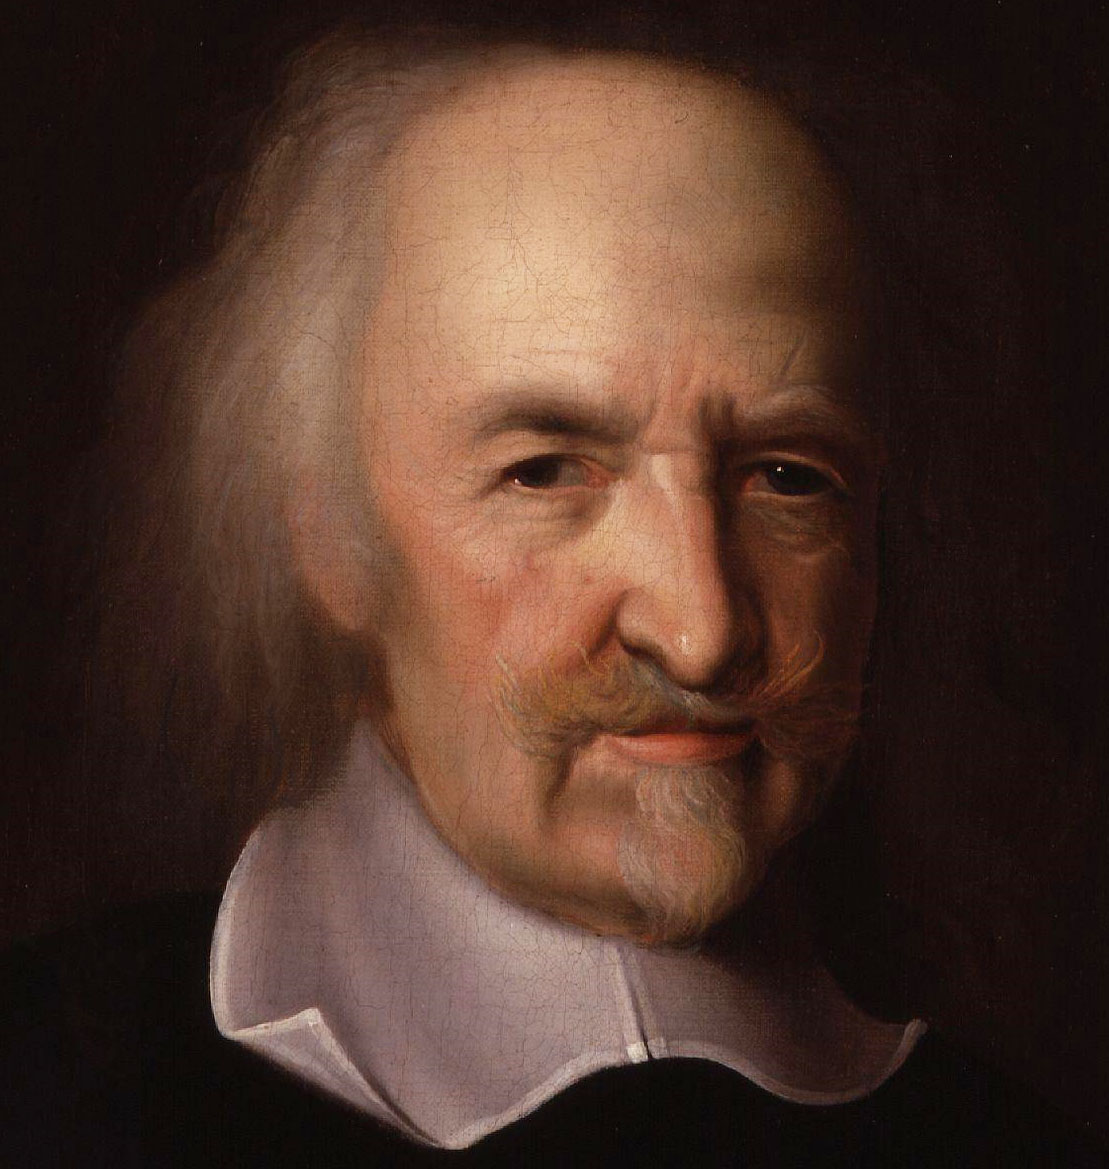 an analysis of the justice and sovereignty by plato john locke and robert a dahl